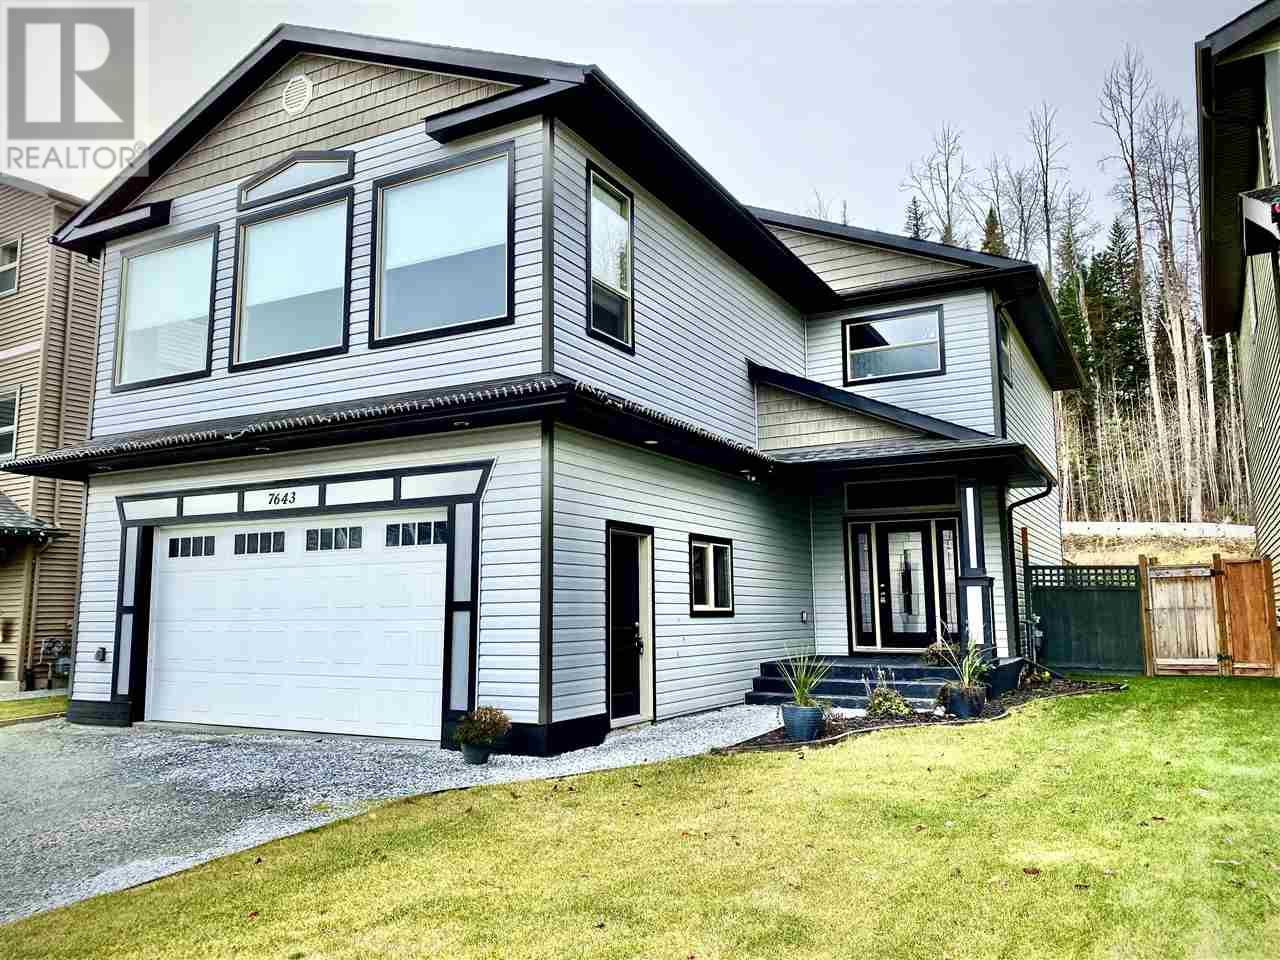 Removed: 7643 Stillwater Crescent, Prince George, BC - Removed on 2020-04-01 05:30:06